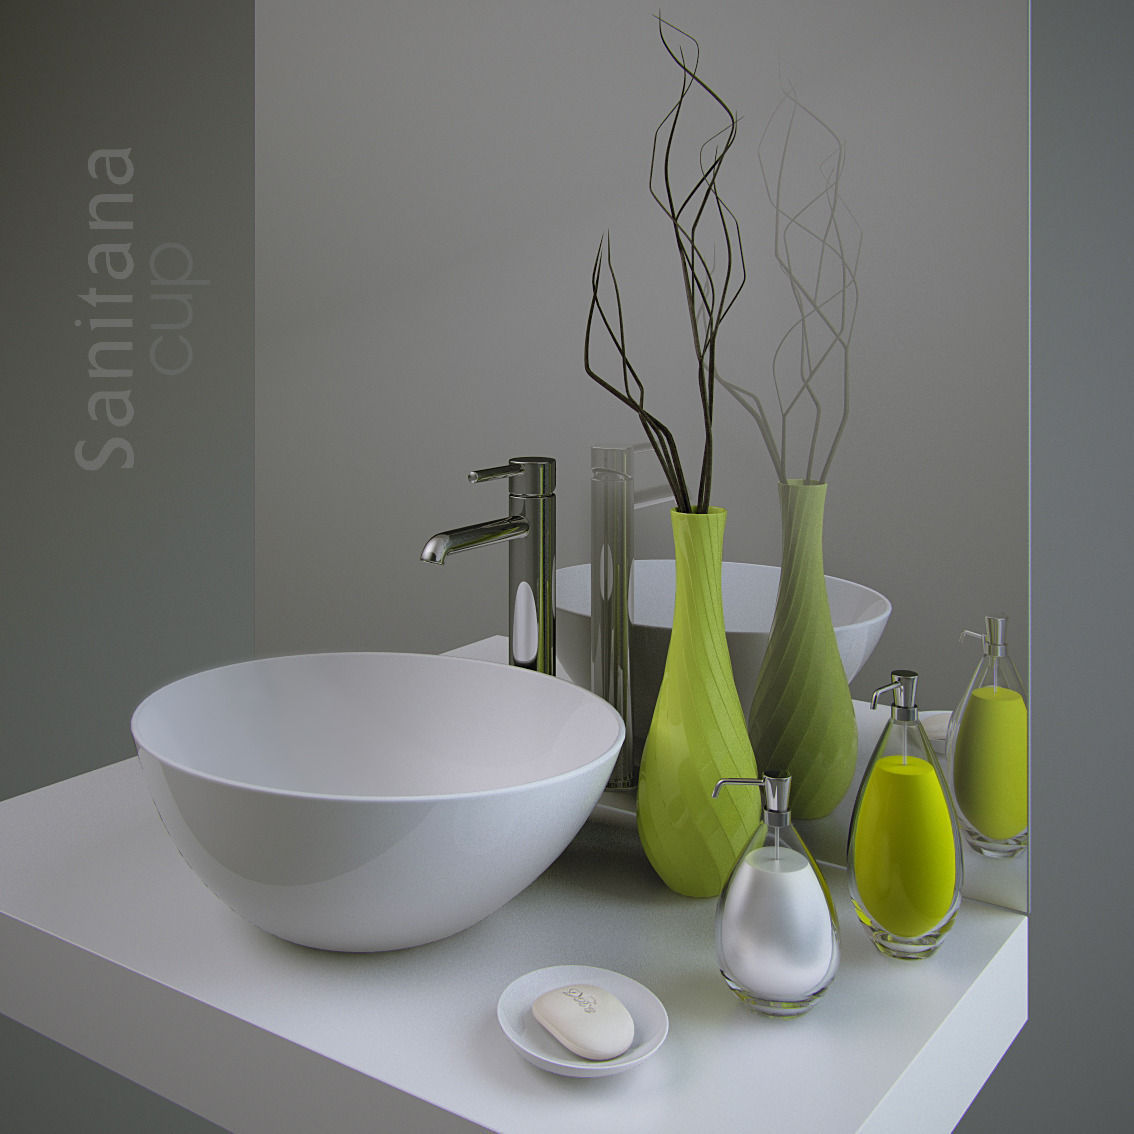 Bathroom set sanitana cup and decor 3d model max for 3d bathroom decor